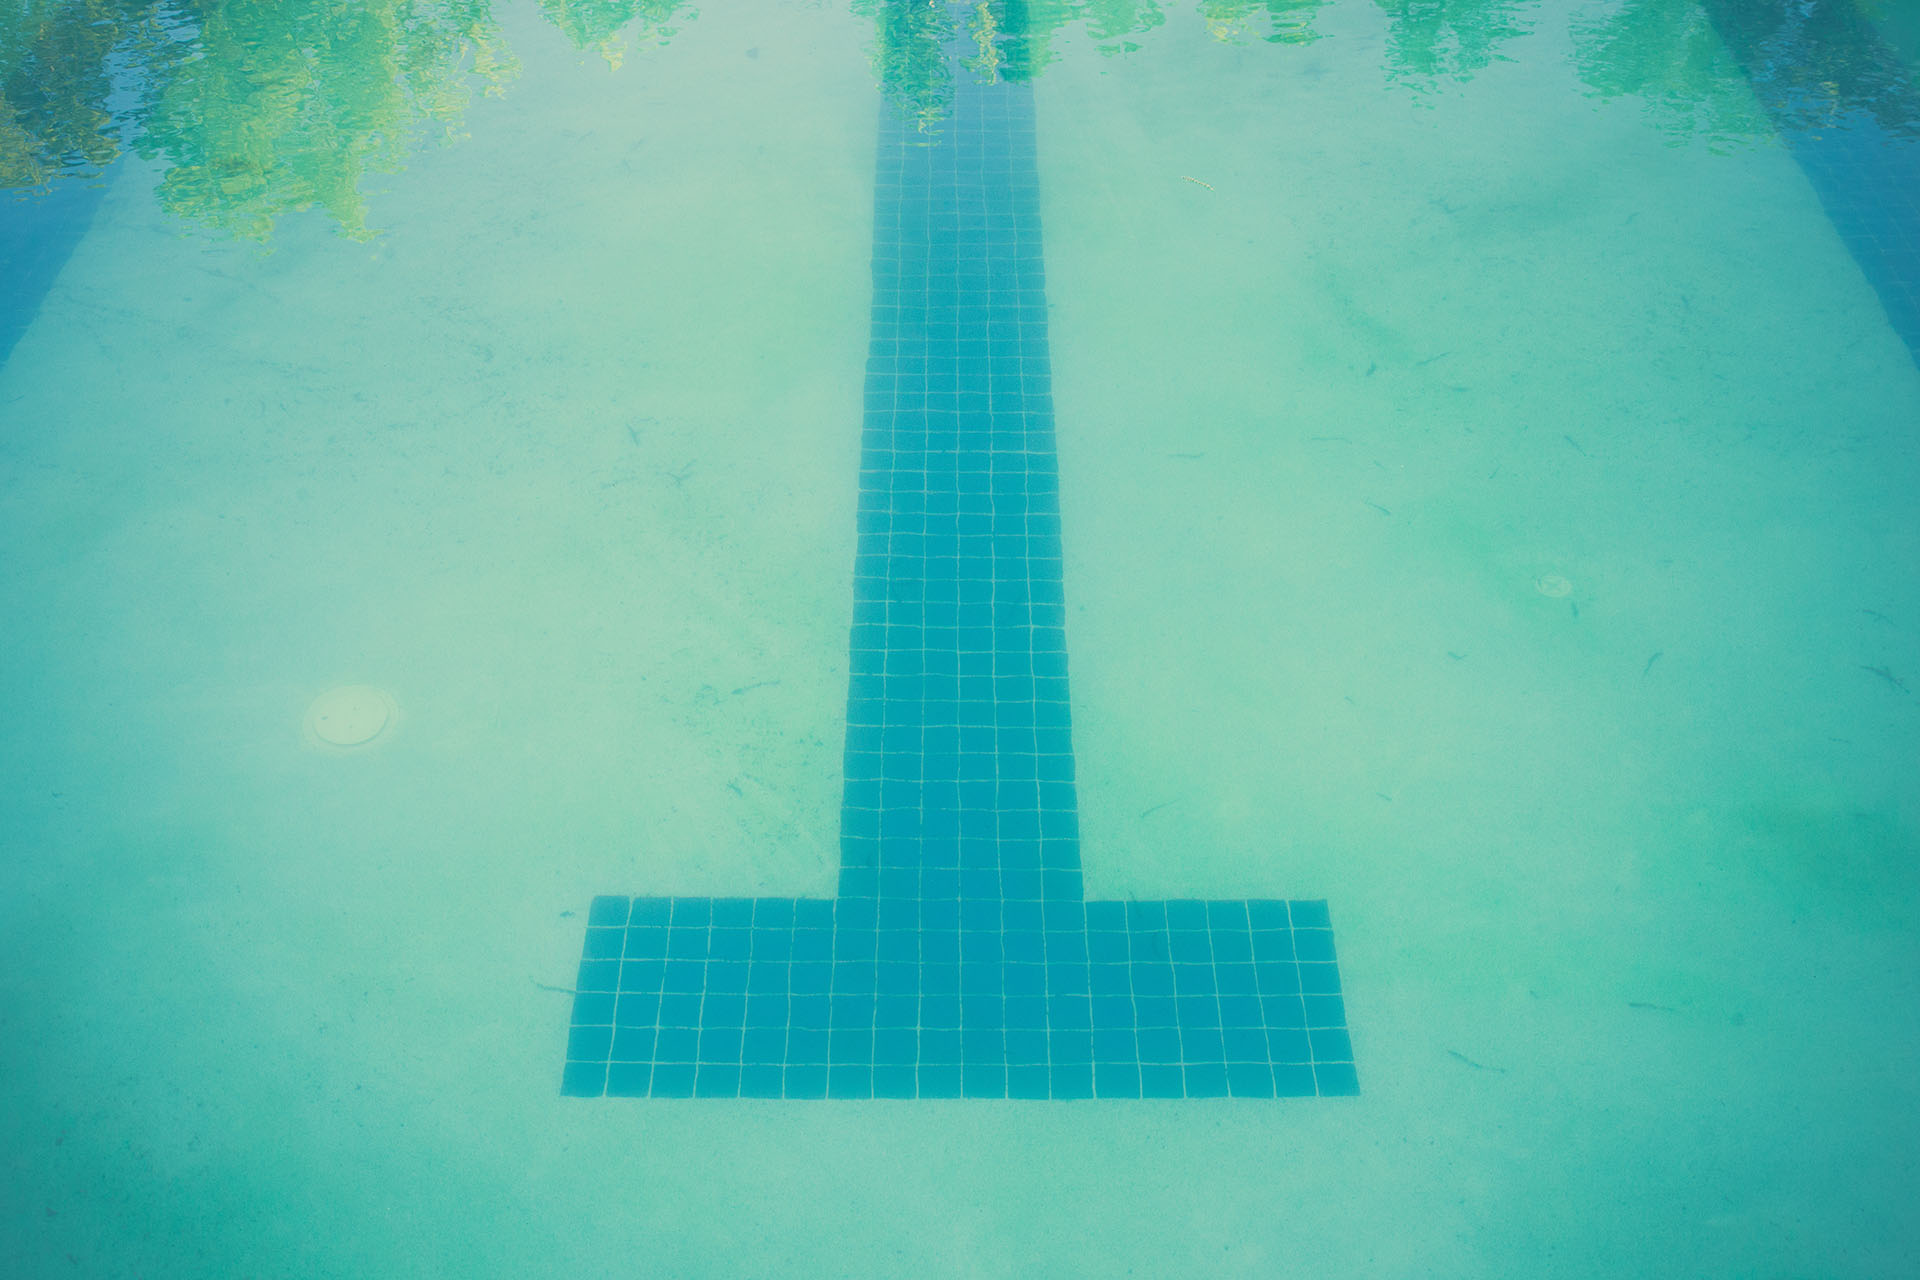 The Best Way to Fix Cloudy Pool Water